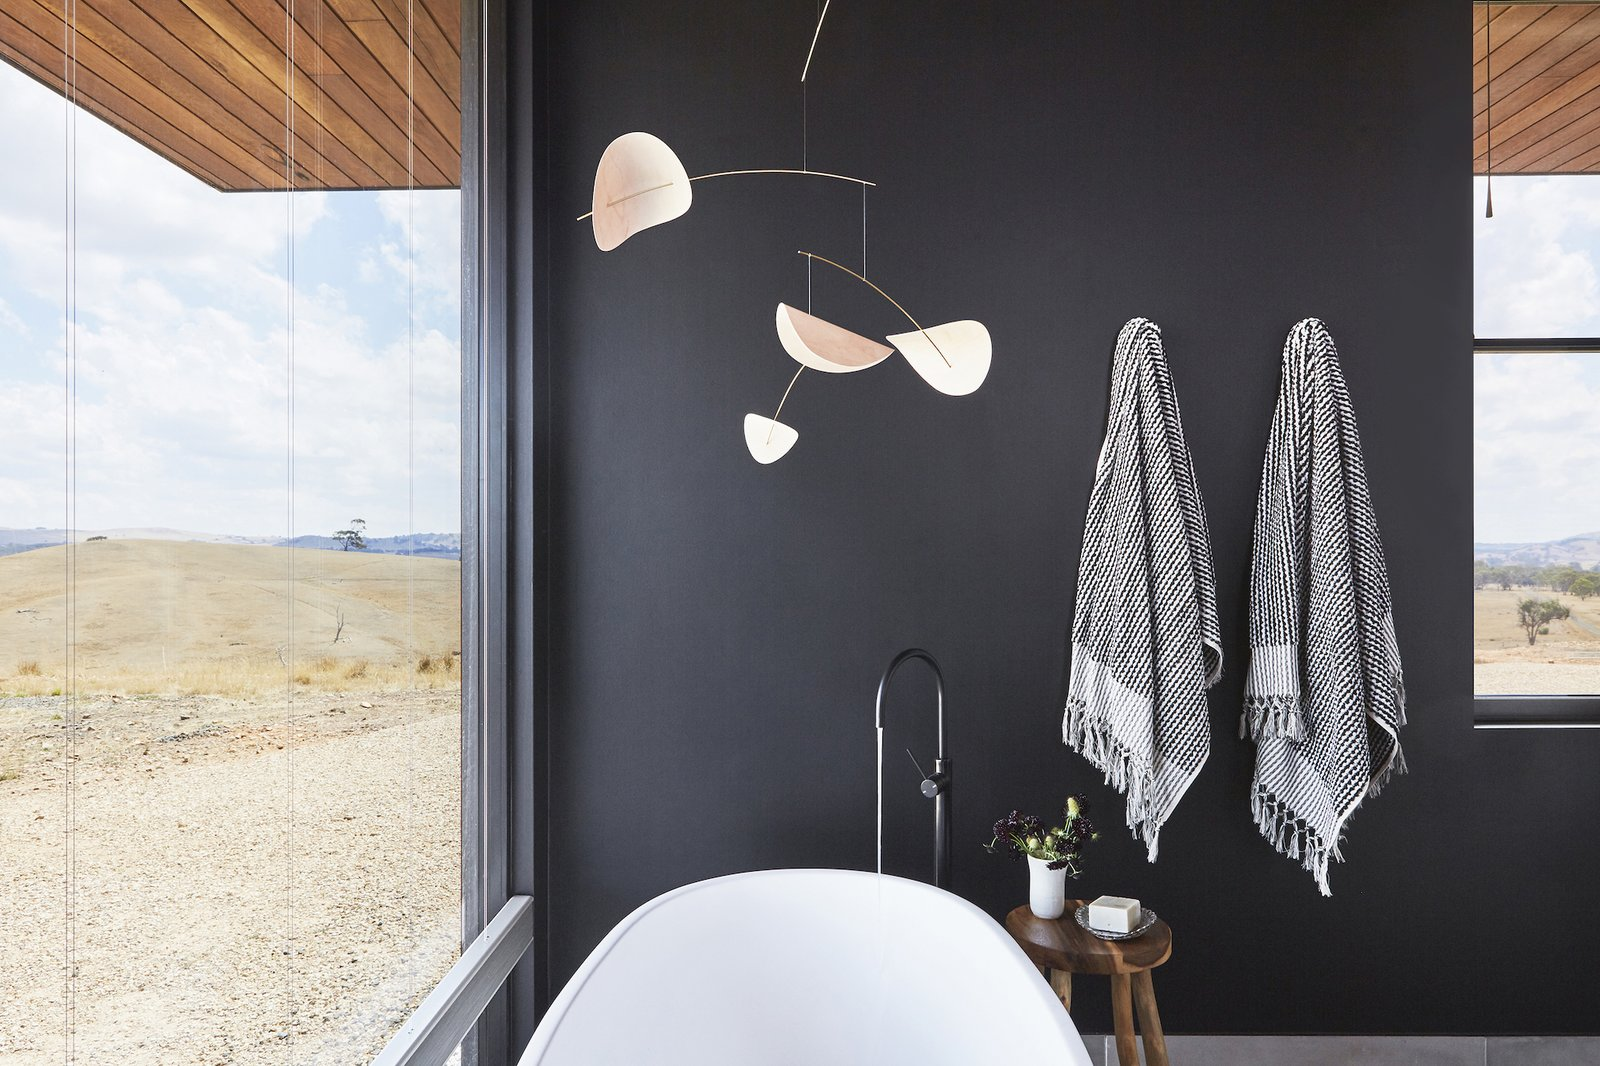 Bathroom at Elemental House by Ben Callery Architects.